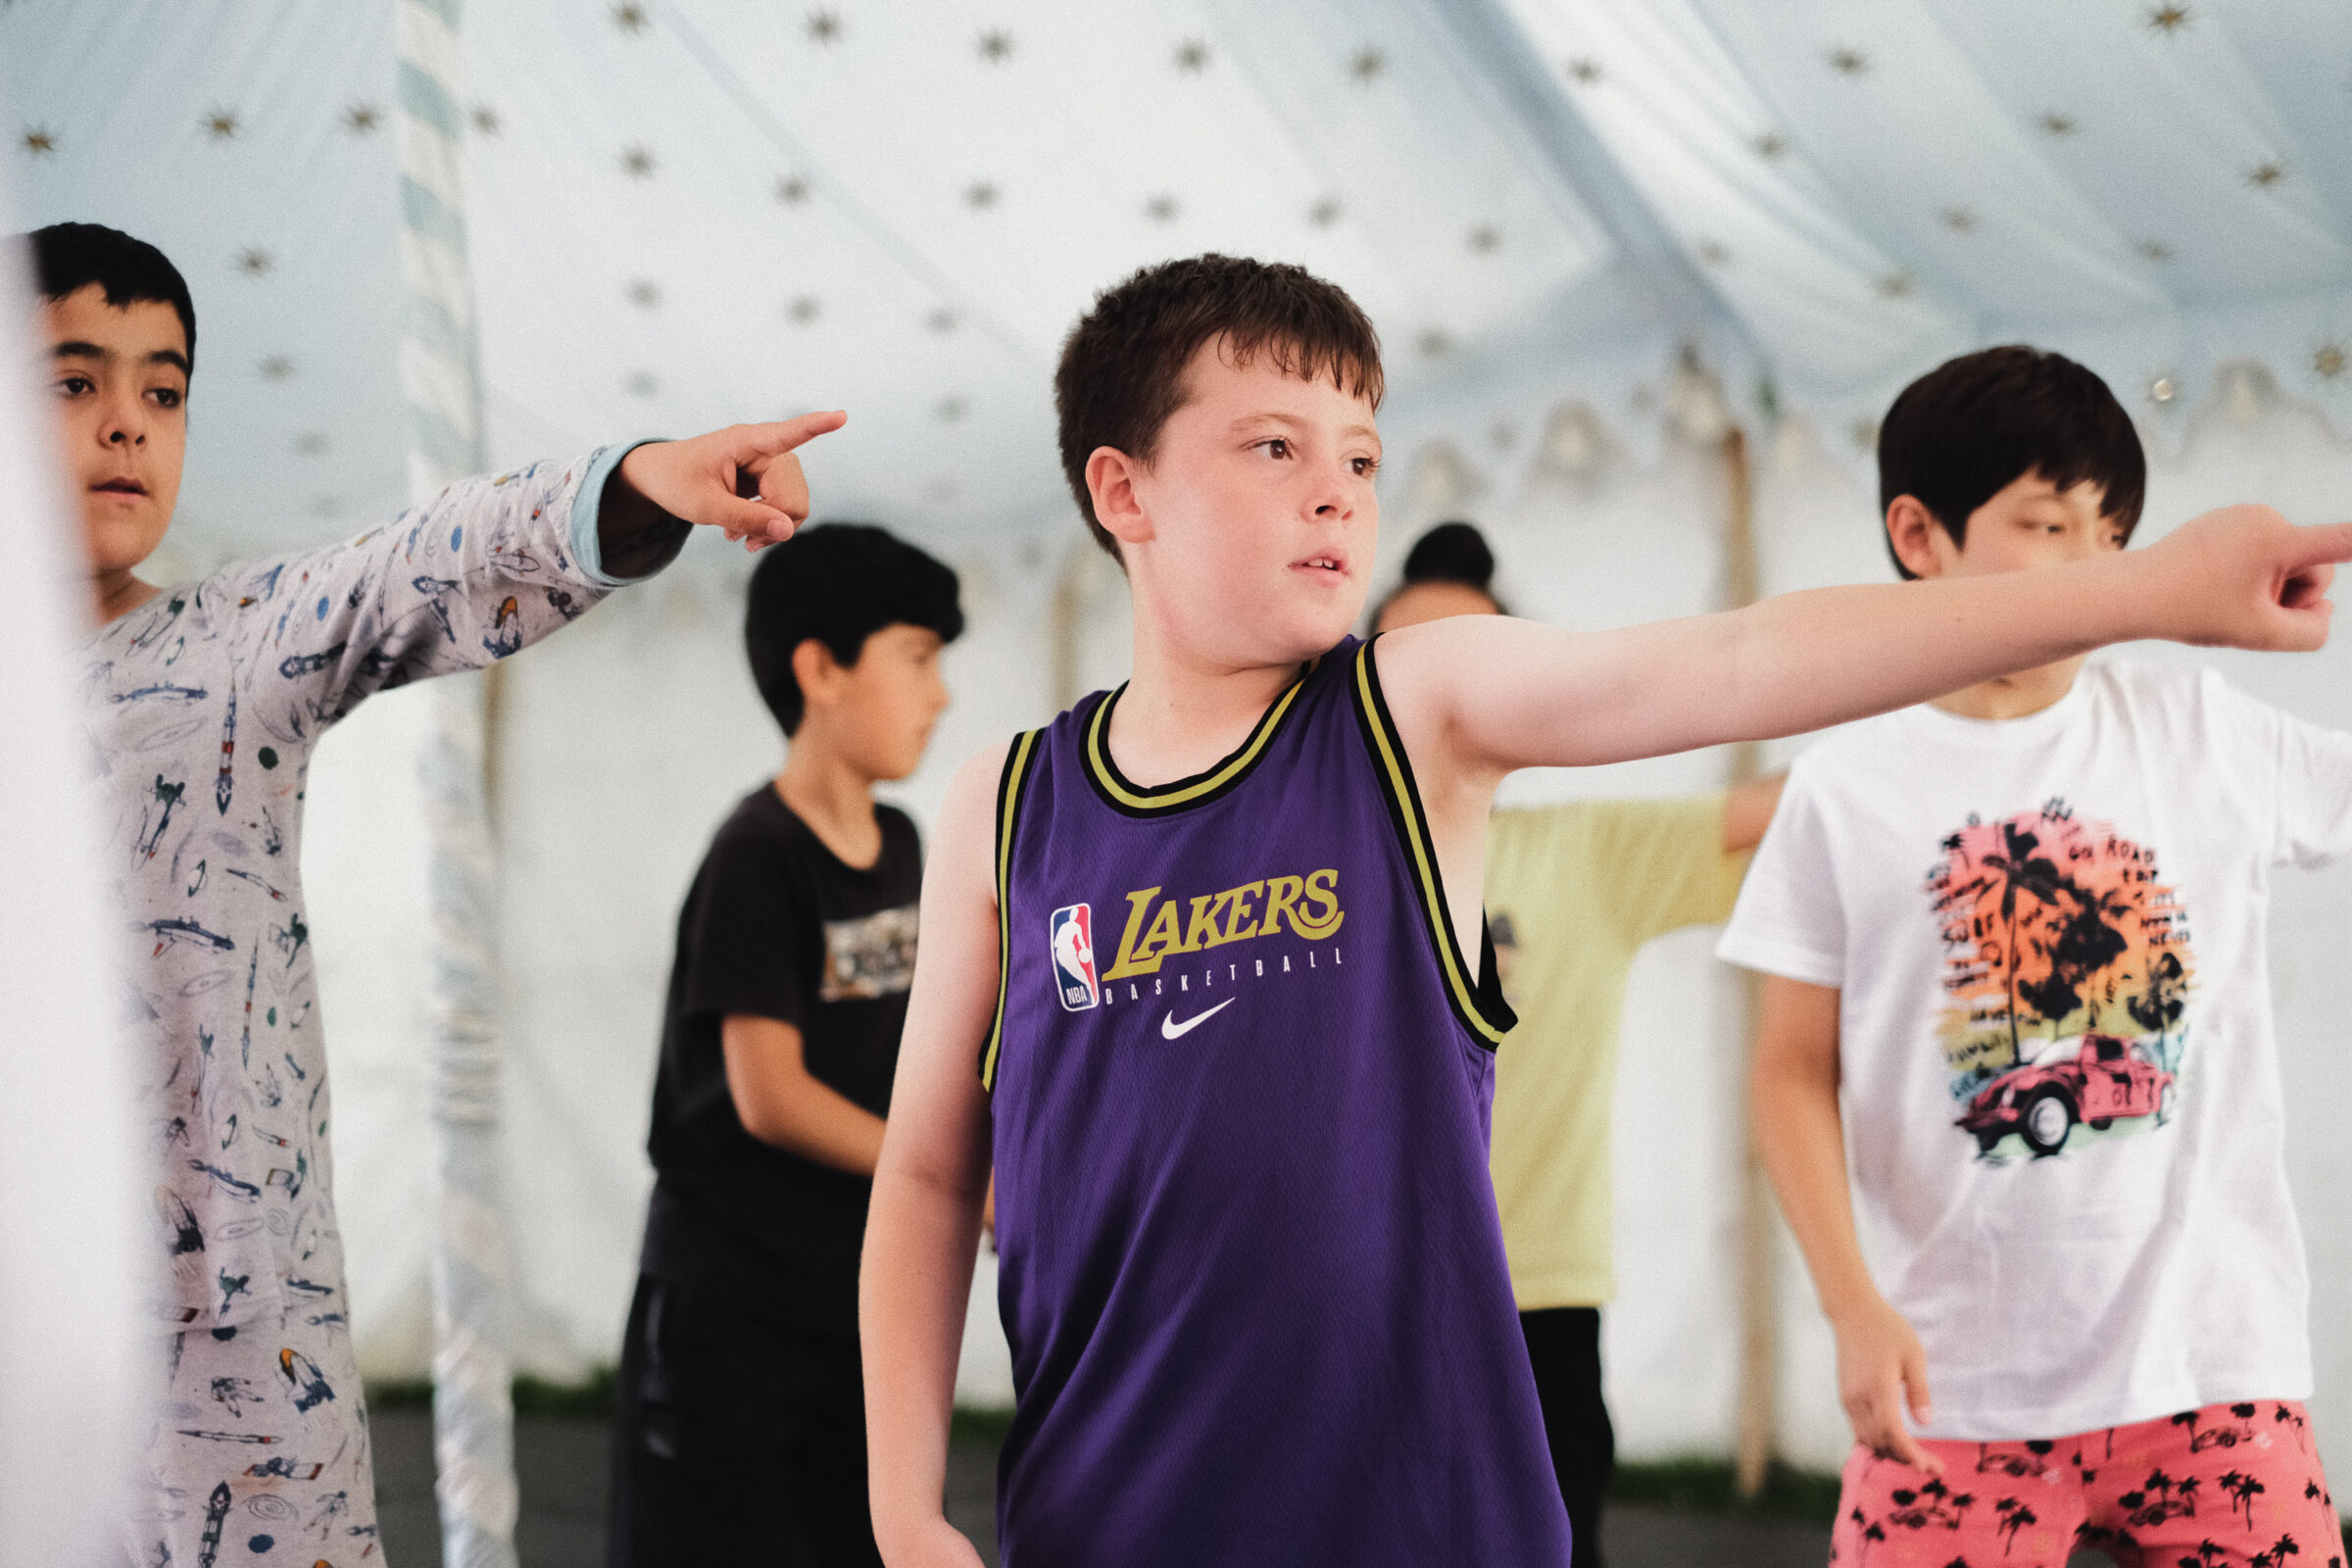 A group of young people perform inside a tent. They have their left arm outstretched and pointing into the distance